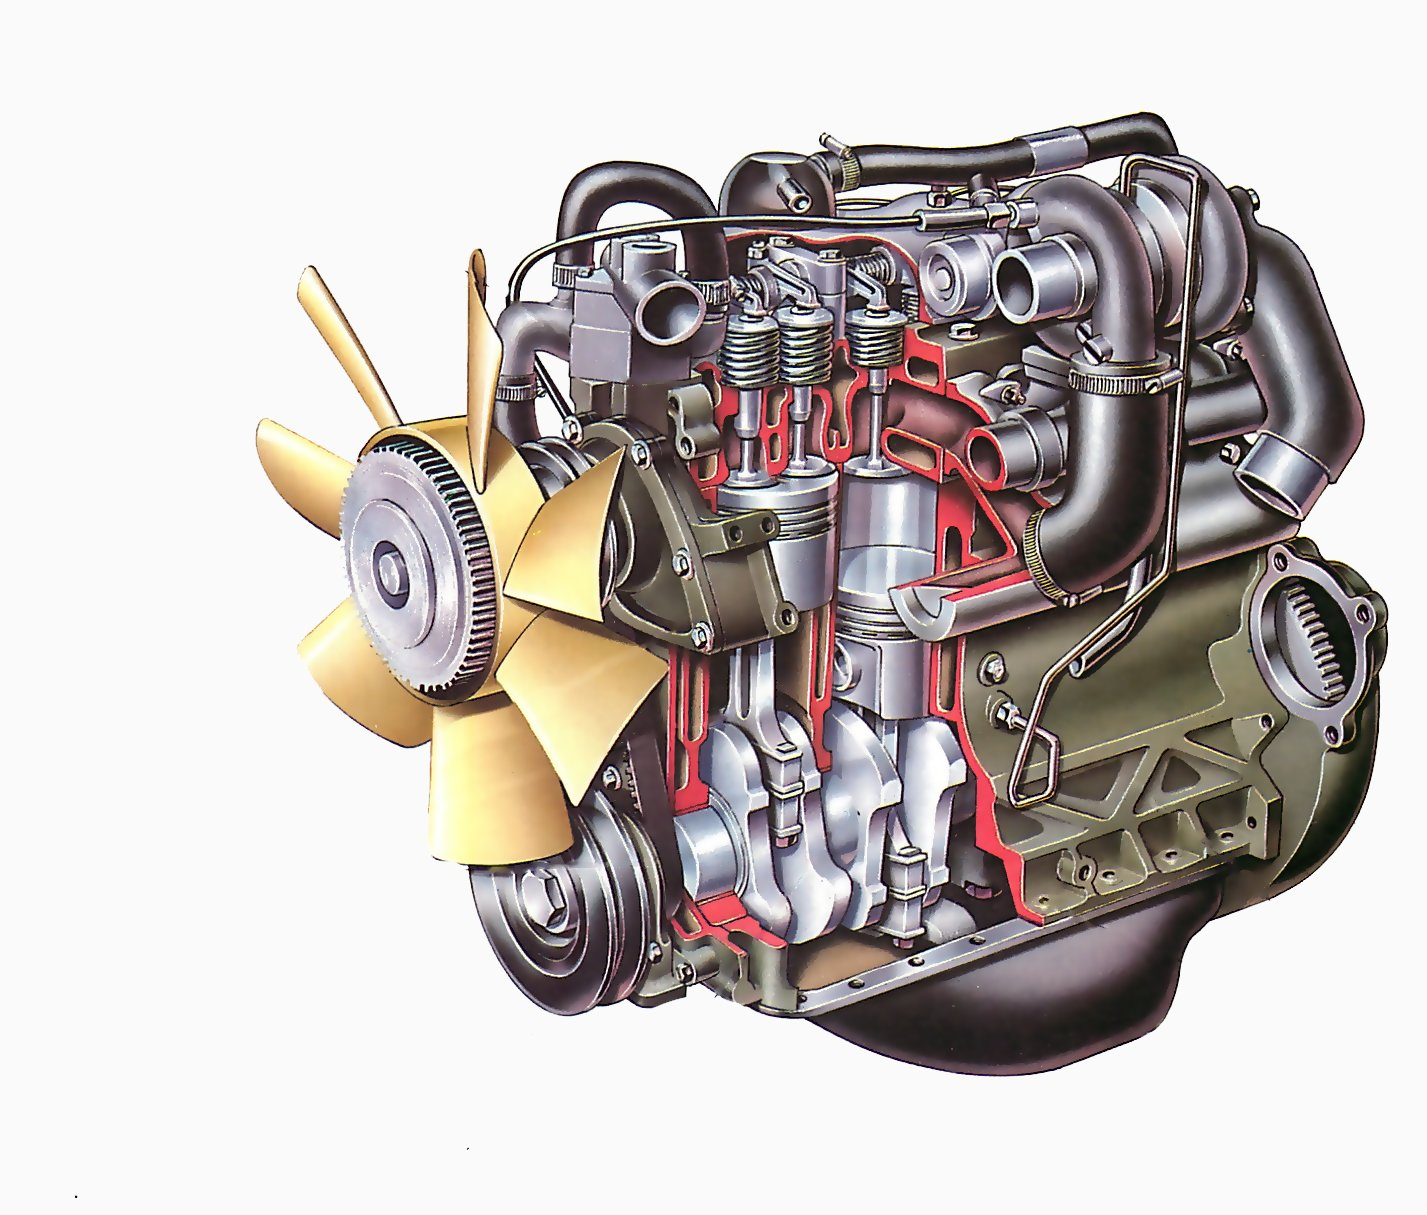 Suzuki Marine Engines Uk